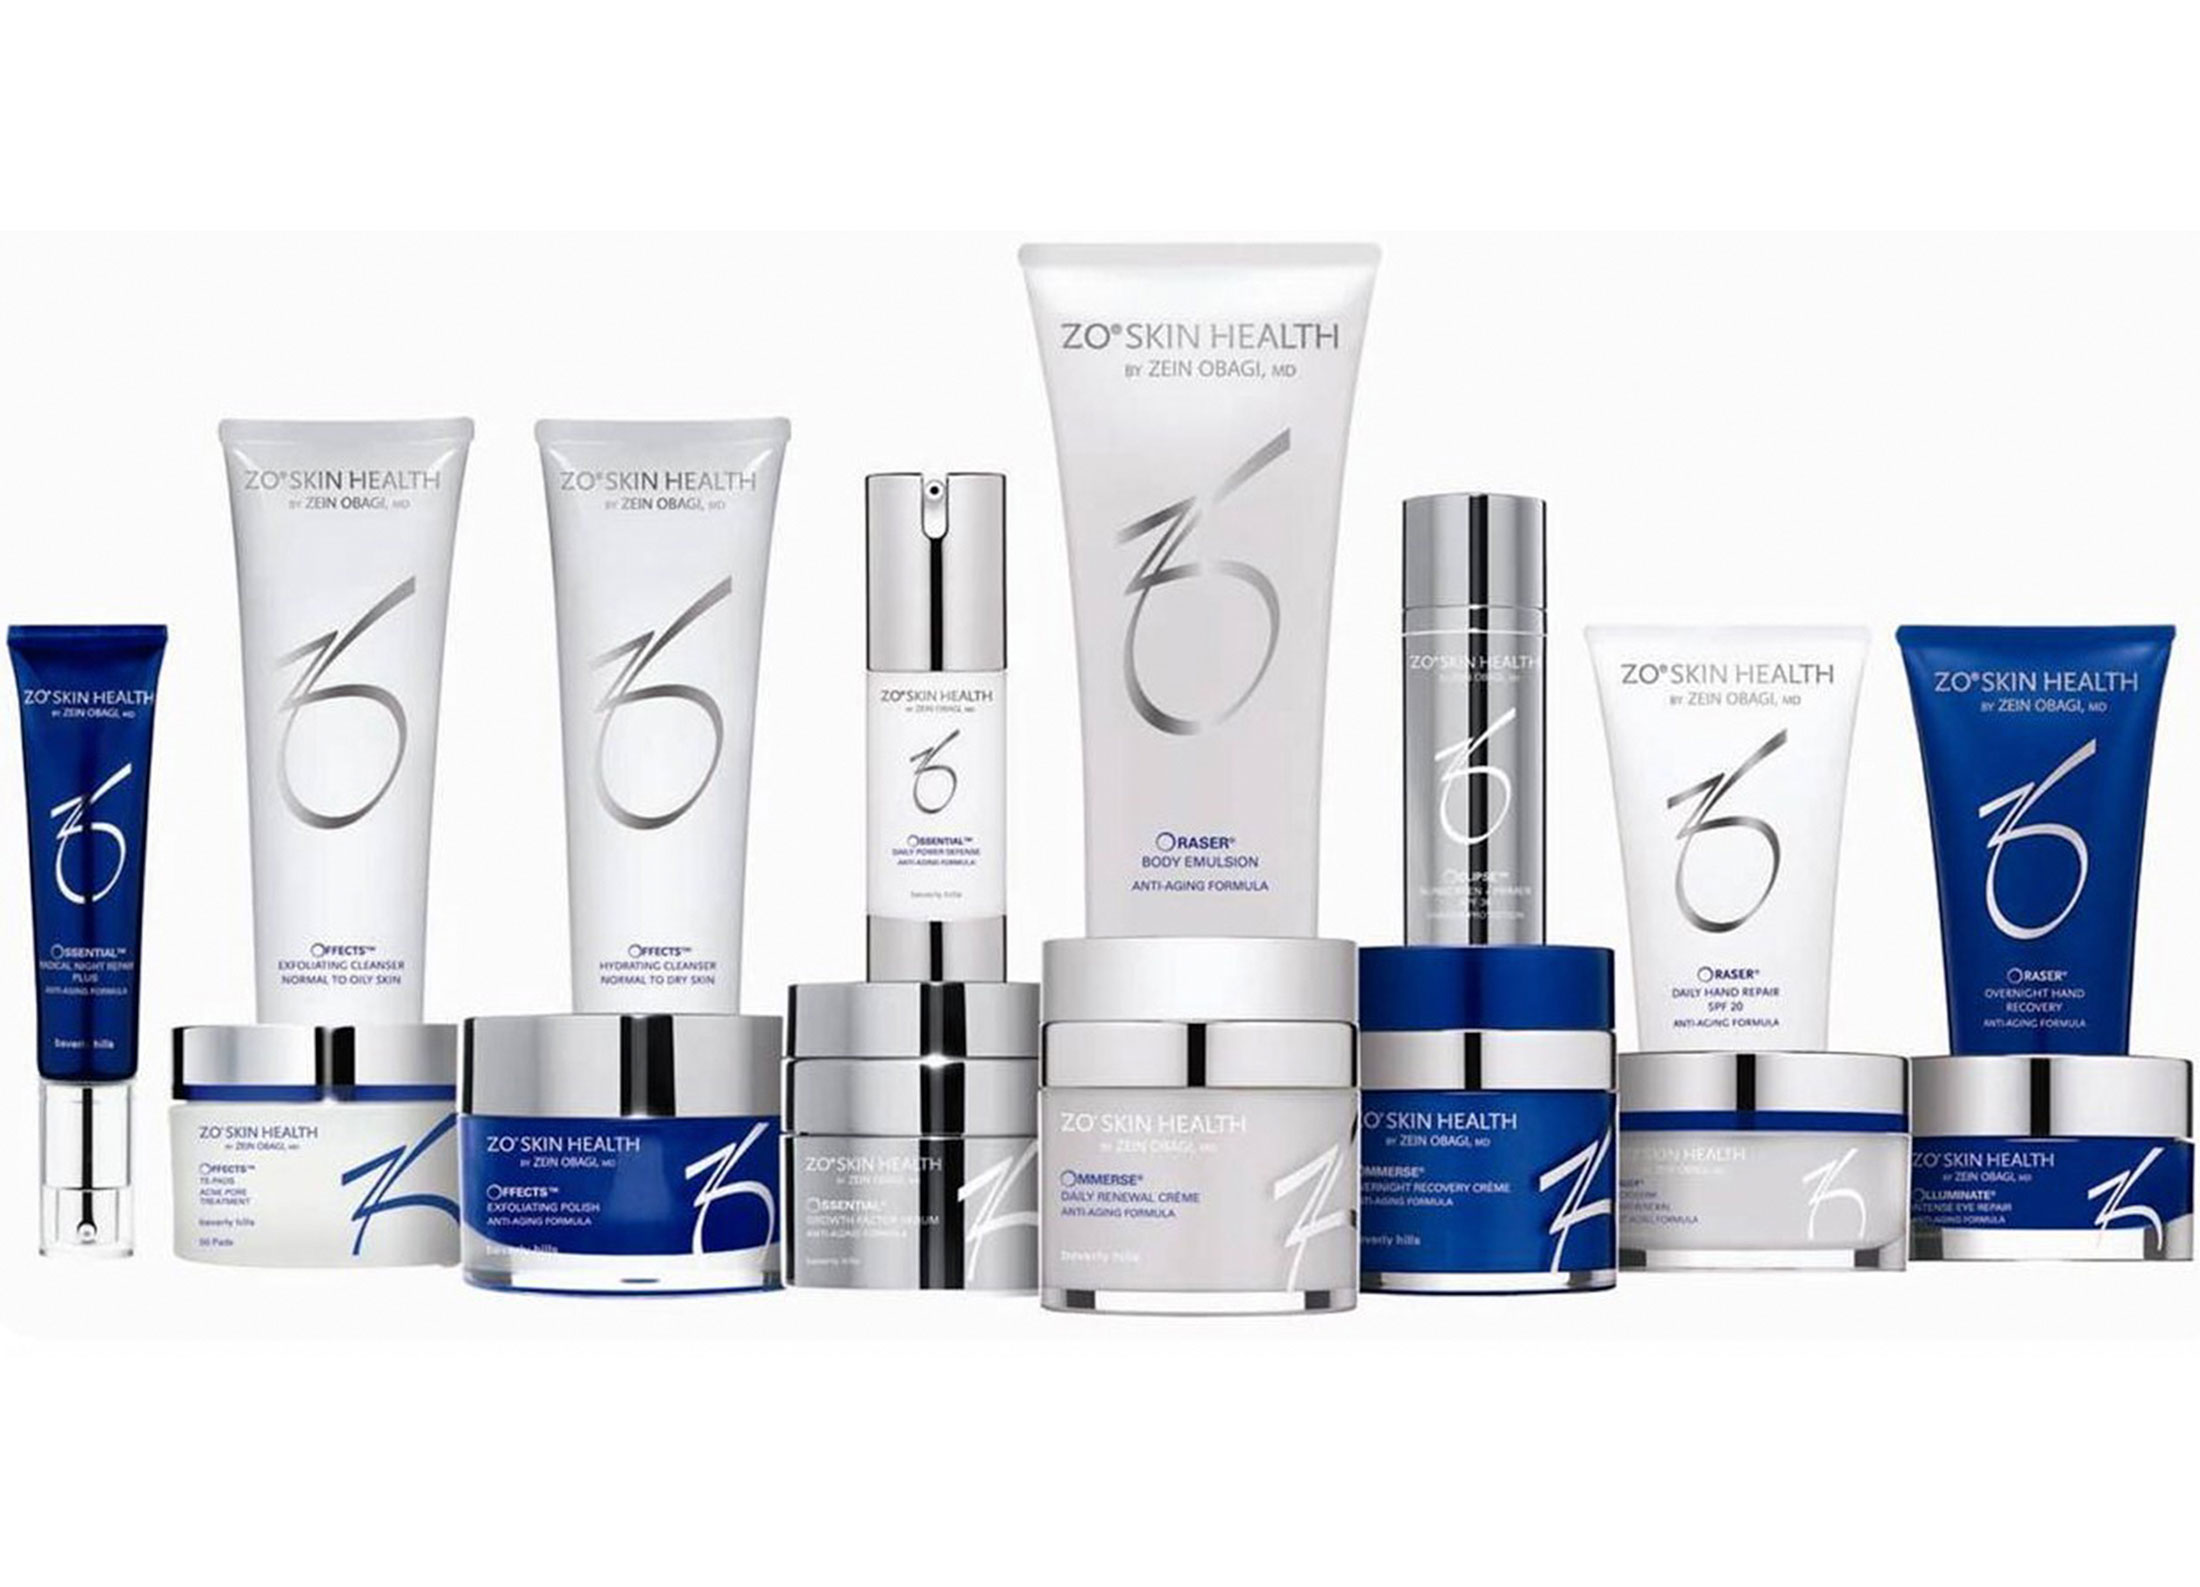 restylane-products1